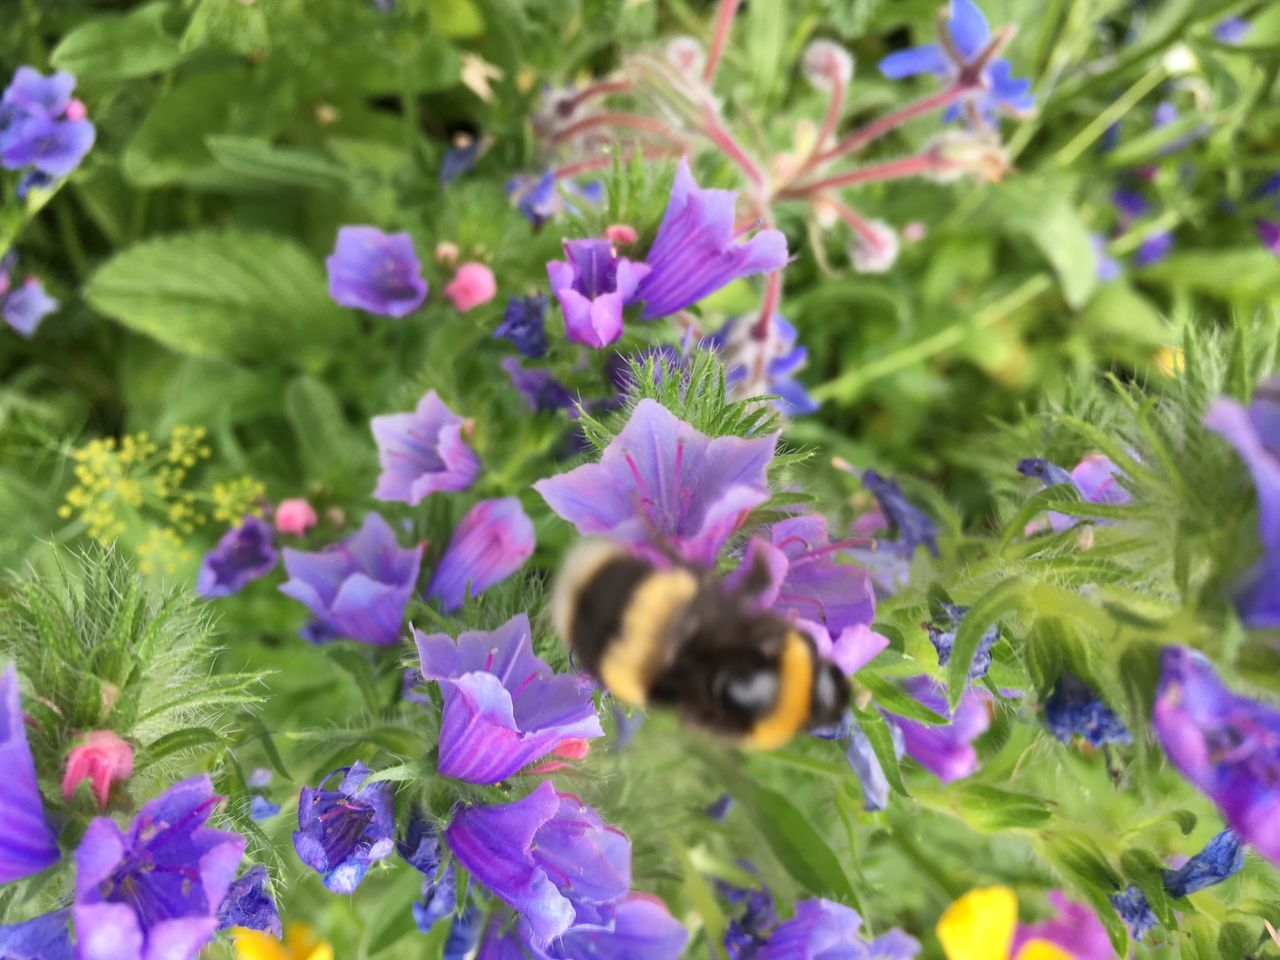 flower, insect, growth, fragility, nature, plant, freshness, beauty in nature, one animal, animal themes, petal, purple, bee, animals in the wild, outdoors, no people, bumblebee, pollination, day, blooming, flower head, buzzing, close-up